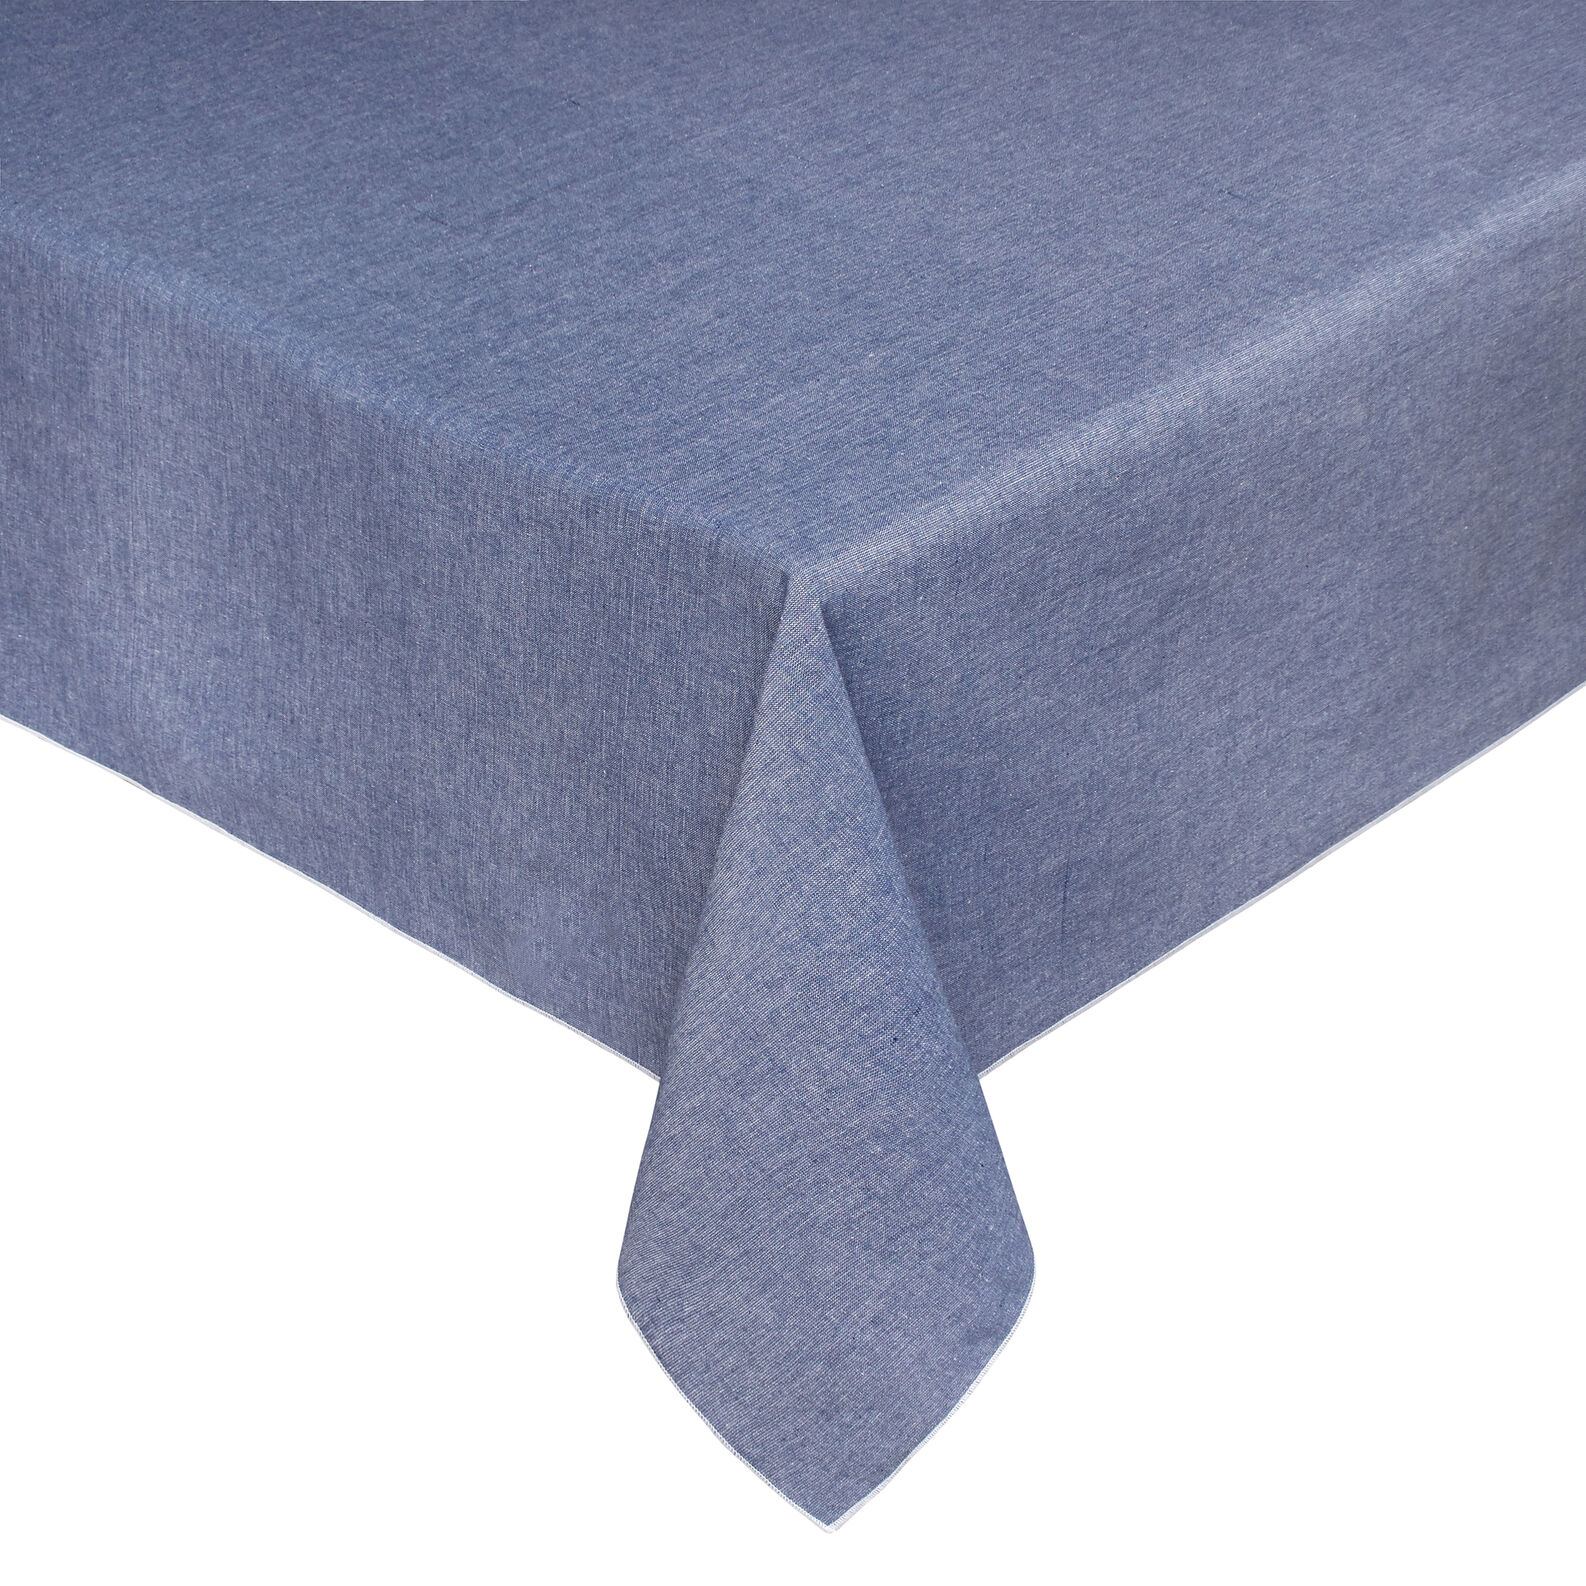 100% cotton mélange tablecloth